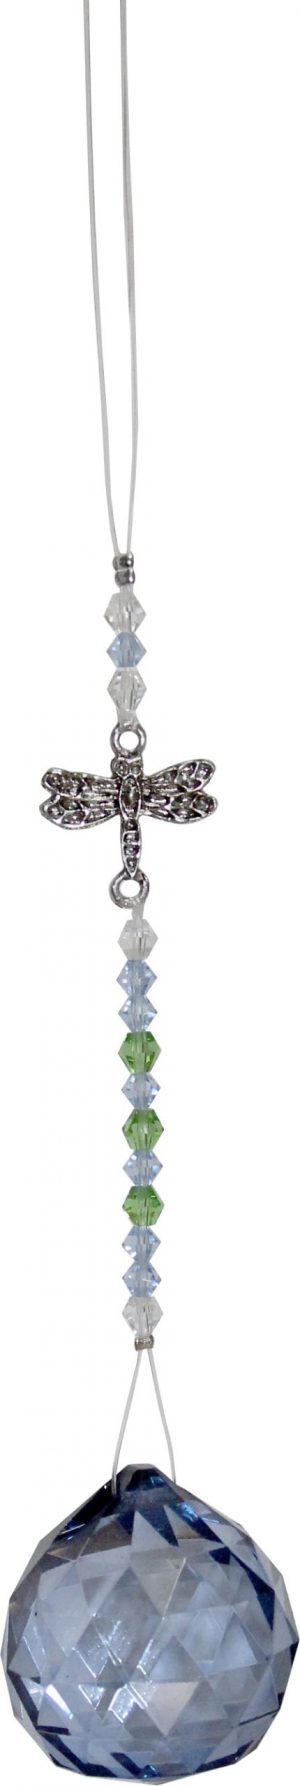 Suspended Crystal Cut Glass with Beads  Libelle - Light blue